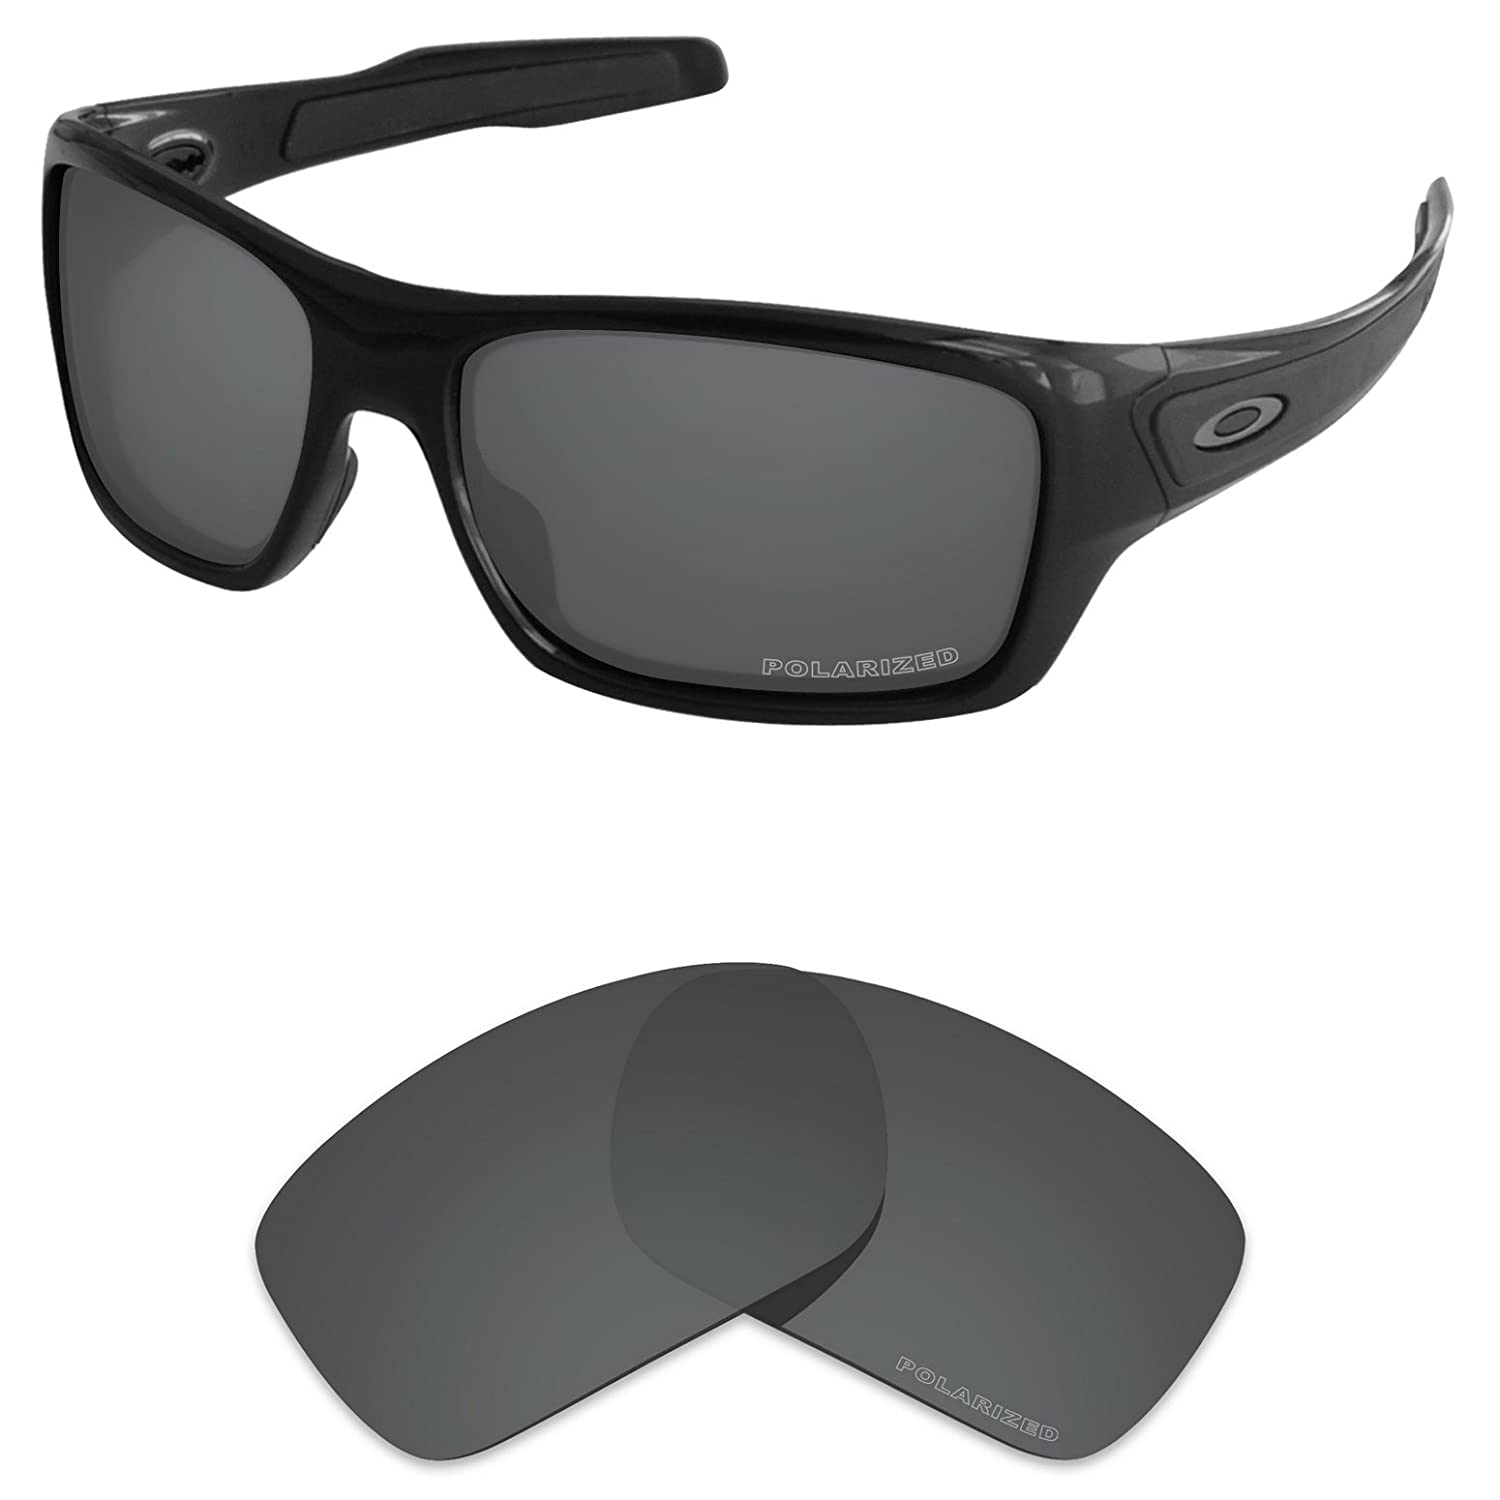 d403397158 Amazon.com  Tintart Performance Lenses Compatible with Oakley Turbine  Polarized Etched-Carbon Black  Clothing